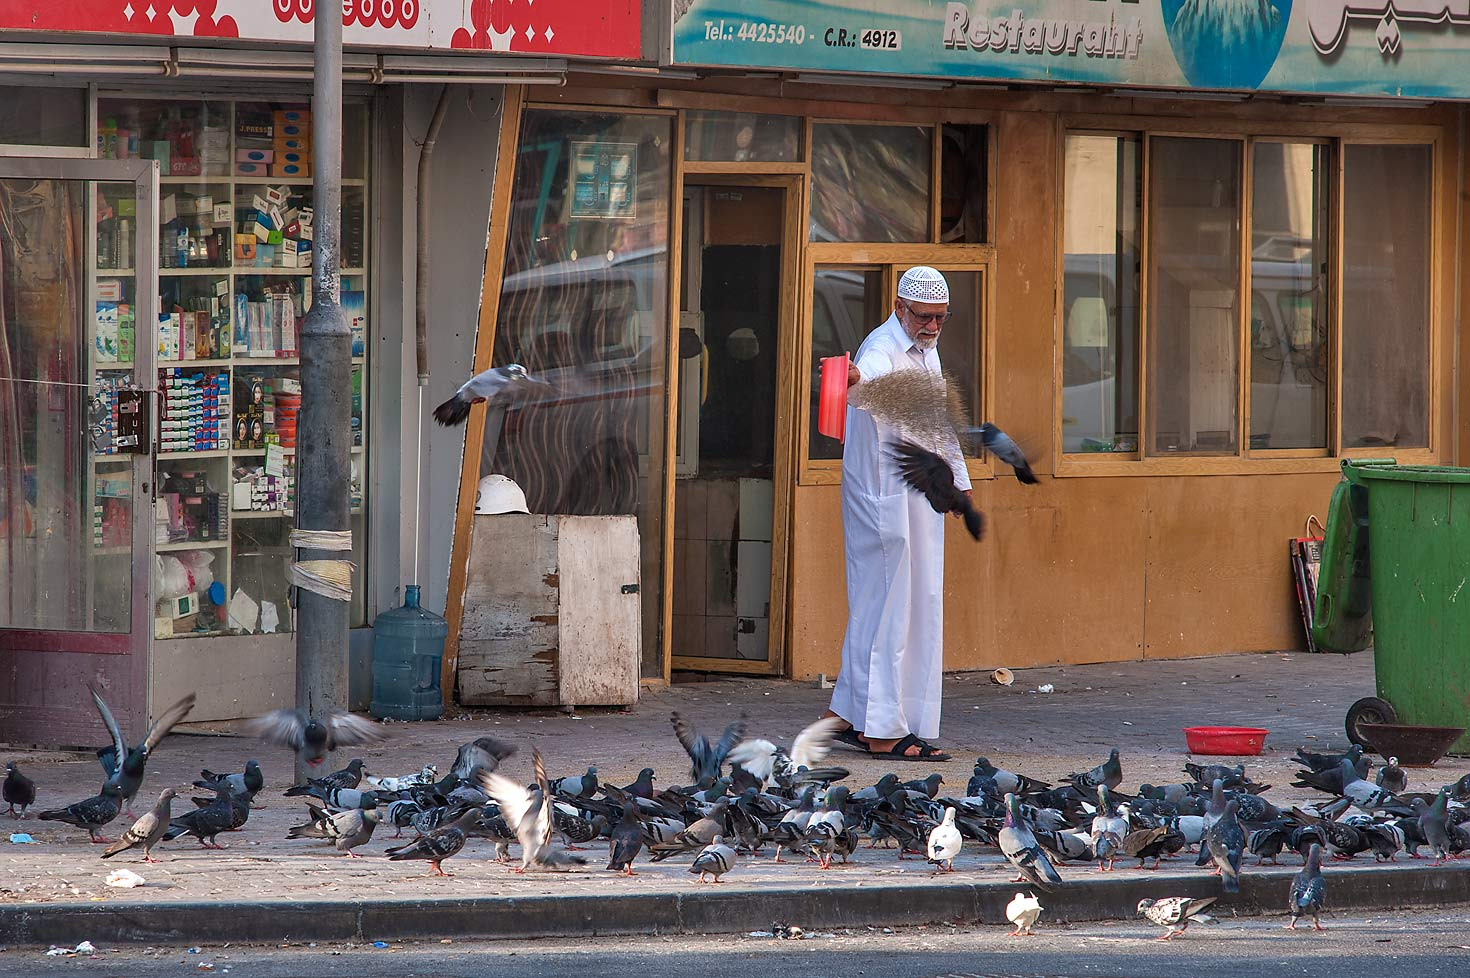 Feeding pigeons on Al Asmakh St. in Musheirib (Msheireb) area. Doha, Qatar